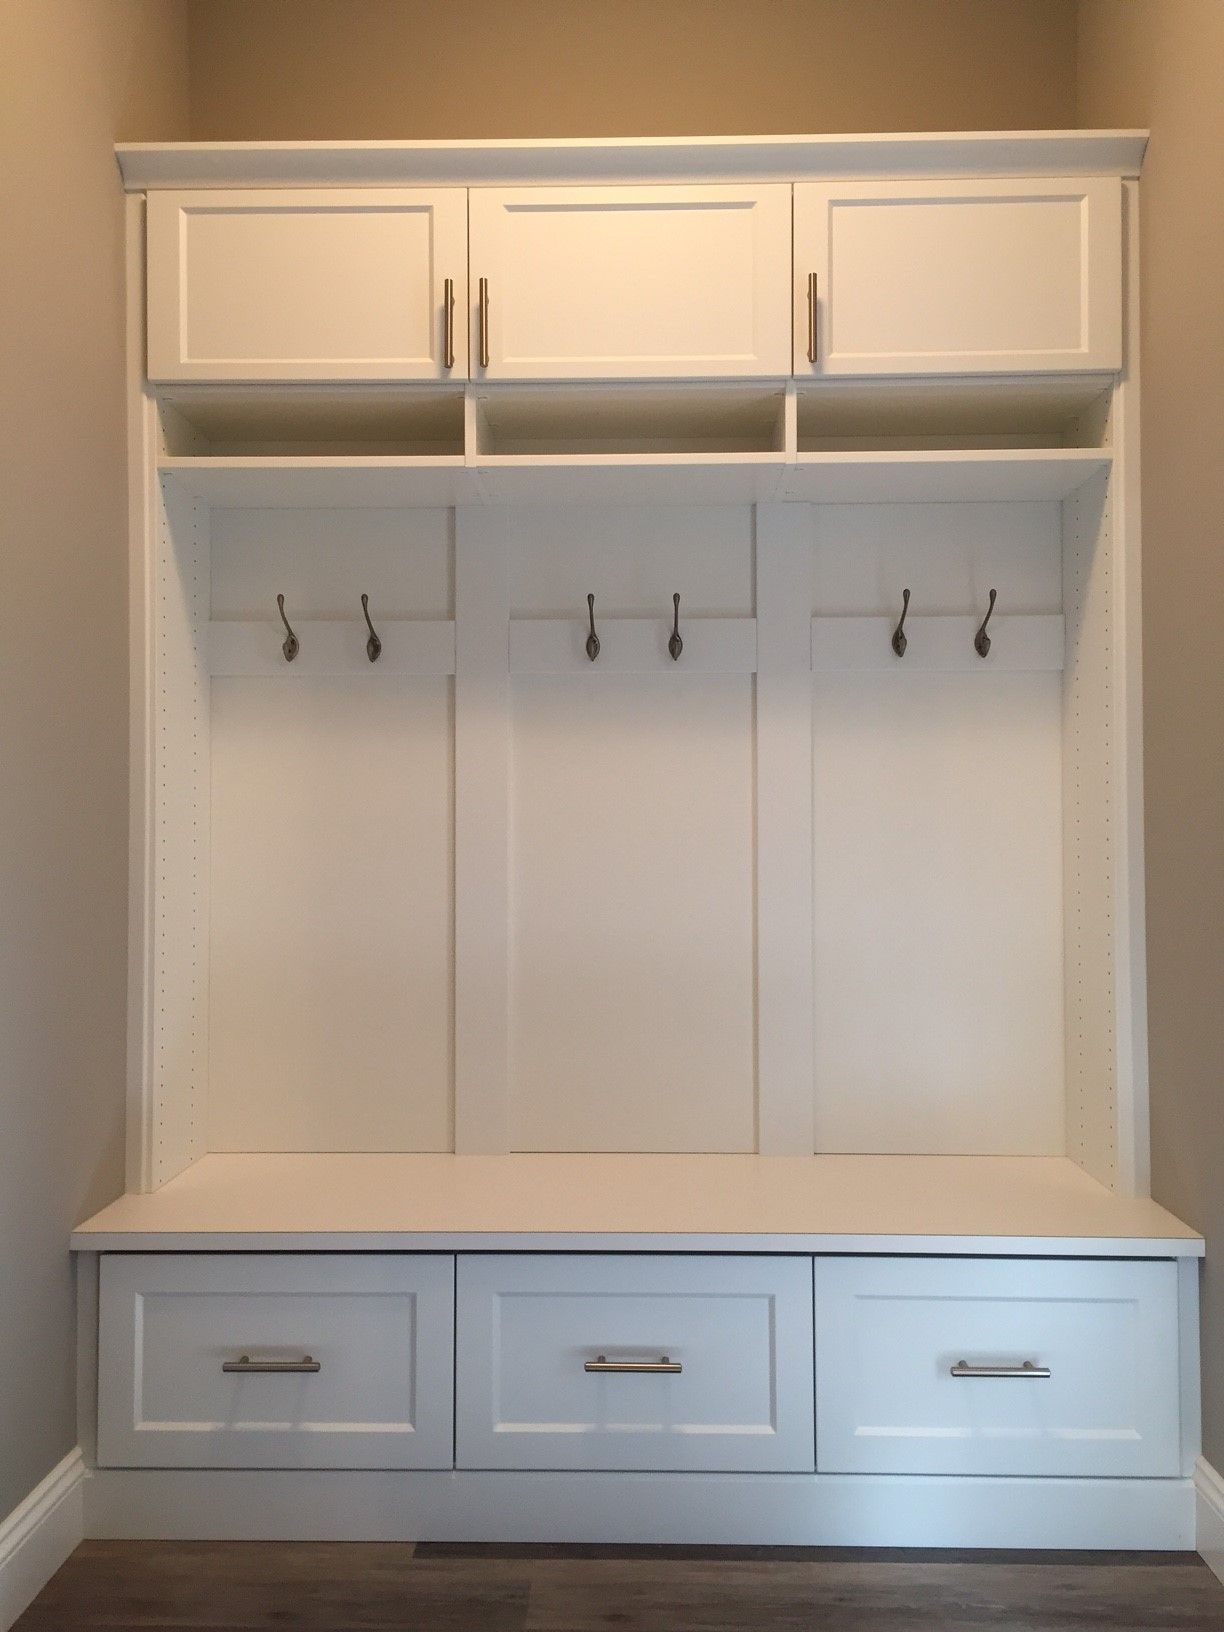 Here Are Some Mudroom Lockers With Coat Hooks And Drawers Below Cabinets Above For Lots Of Storage